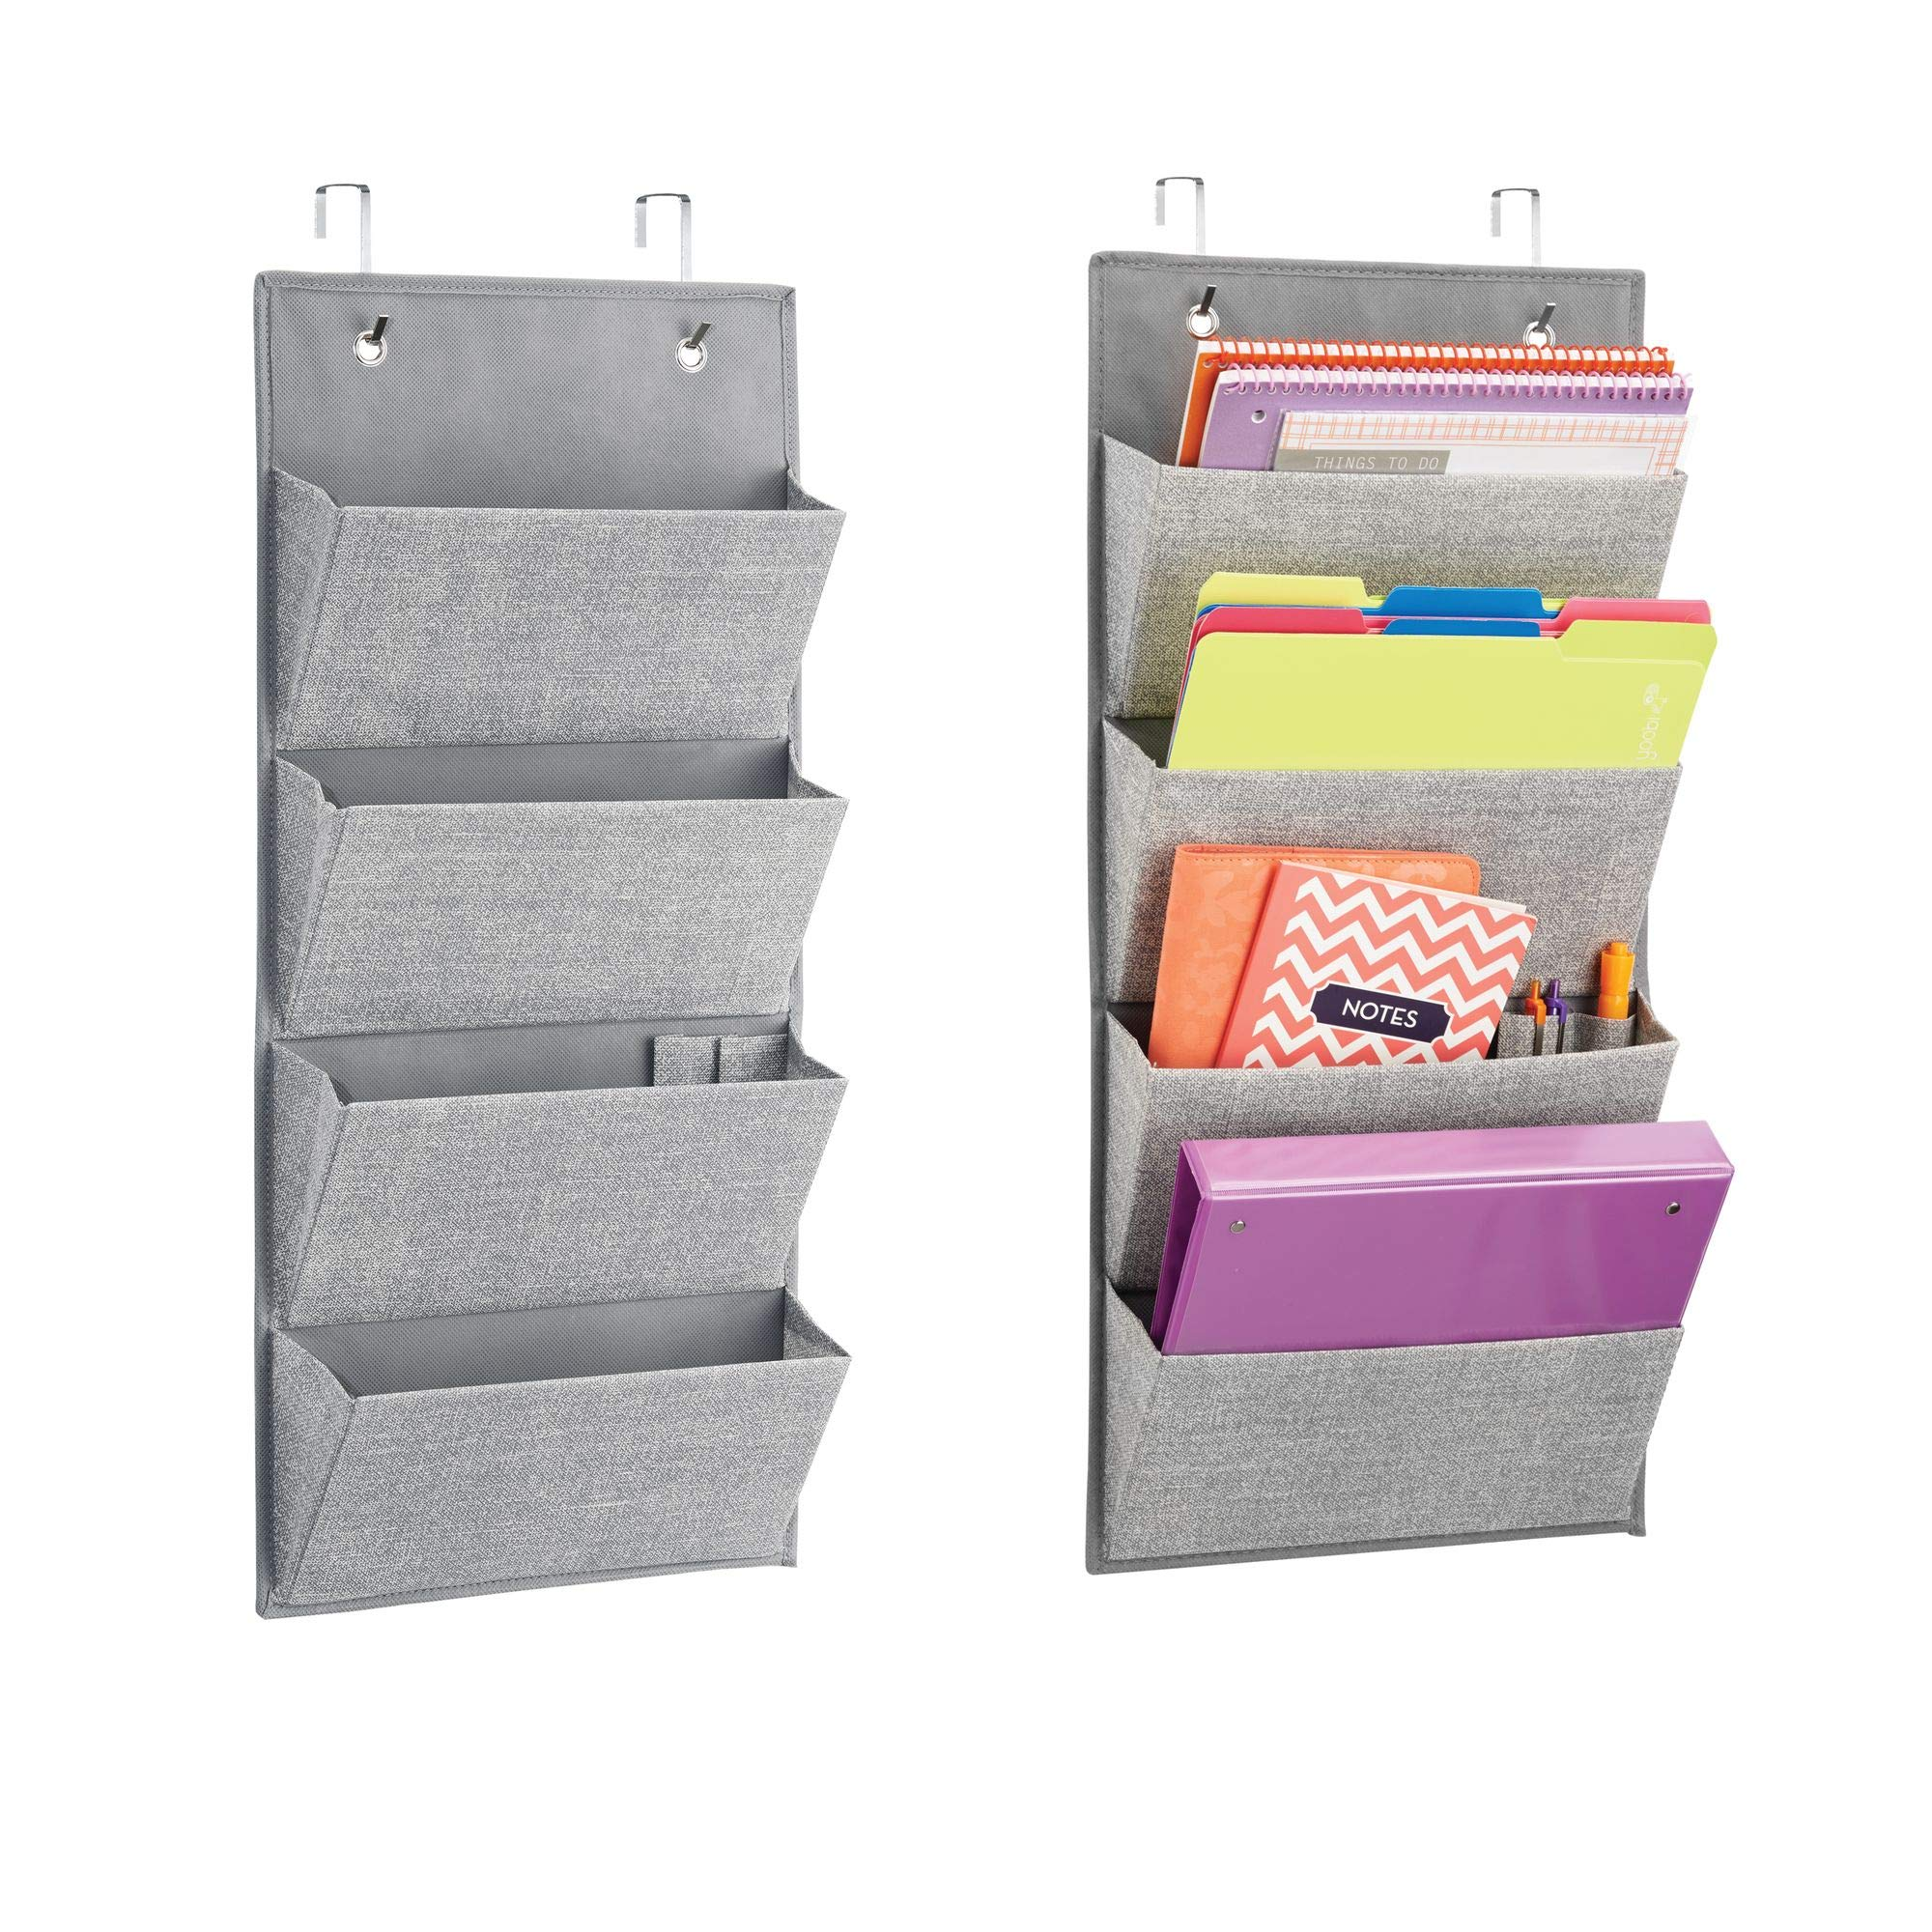 mDesign Over The Cubical Wall Mounting Hanging Fabric Office Supplies Storage Organizer for Notebooks, Planners, File Folders for Home Office Work- Pack of 2, 4 Pockets, Gray